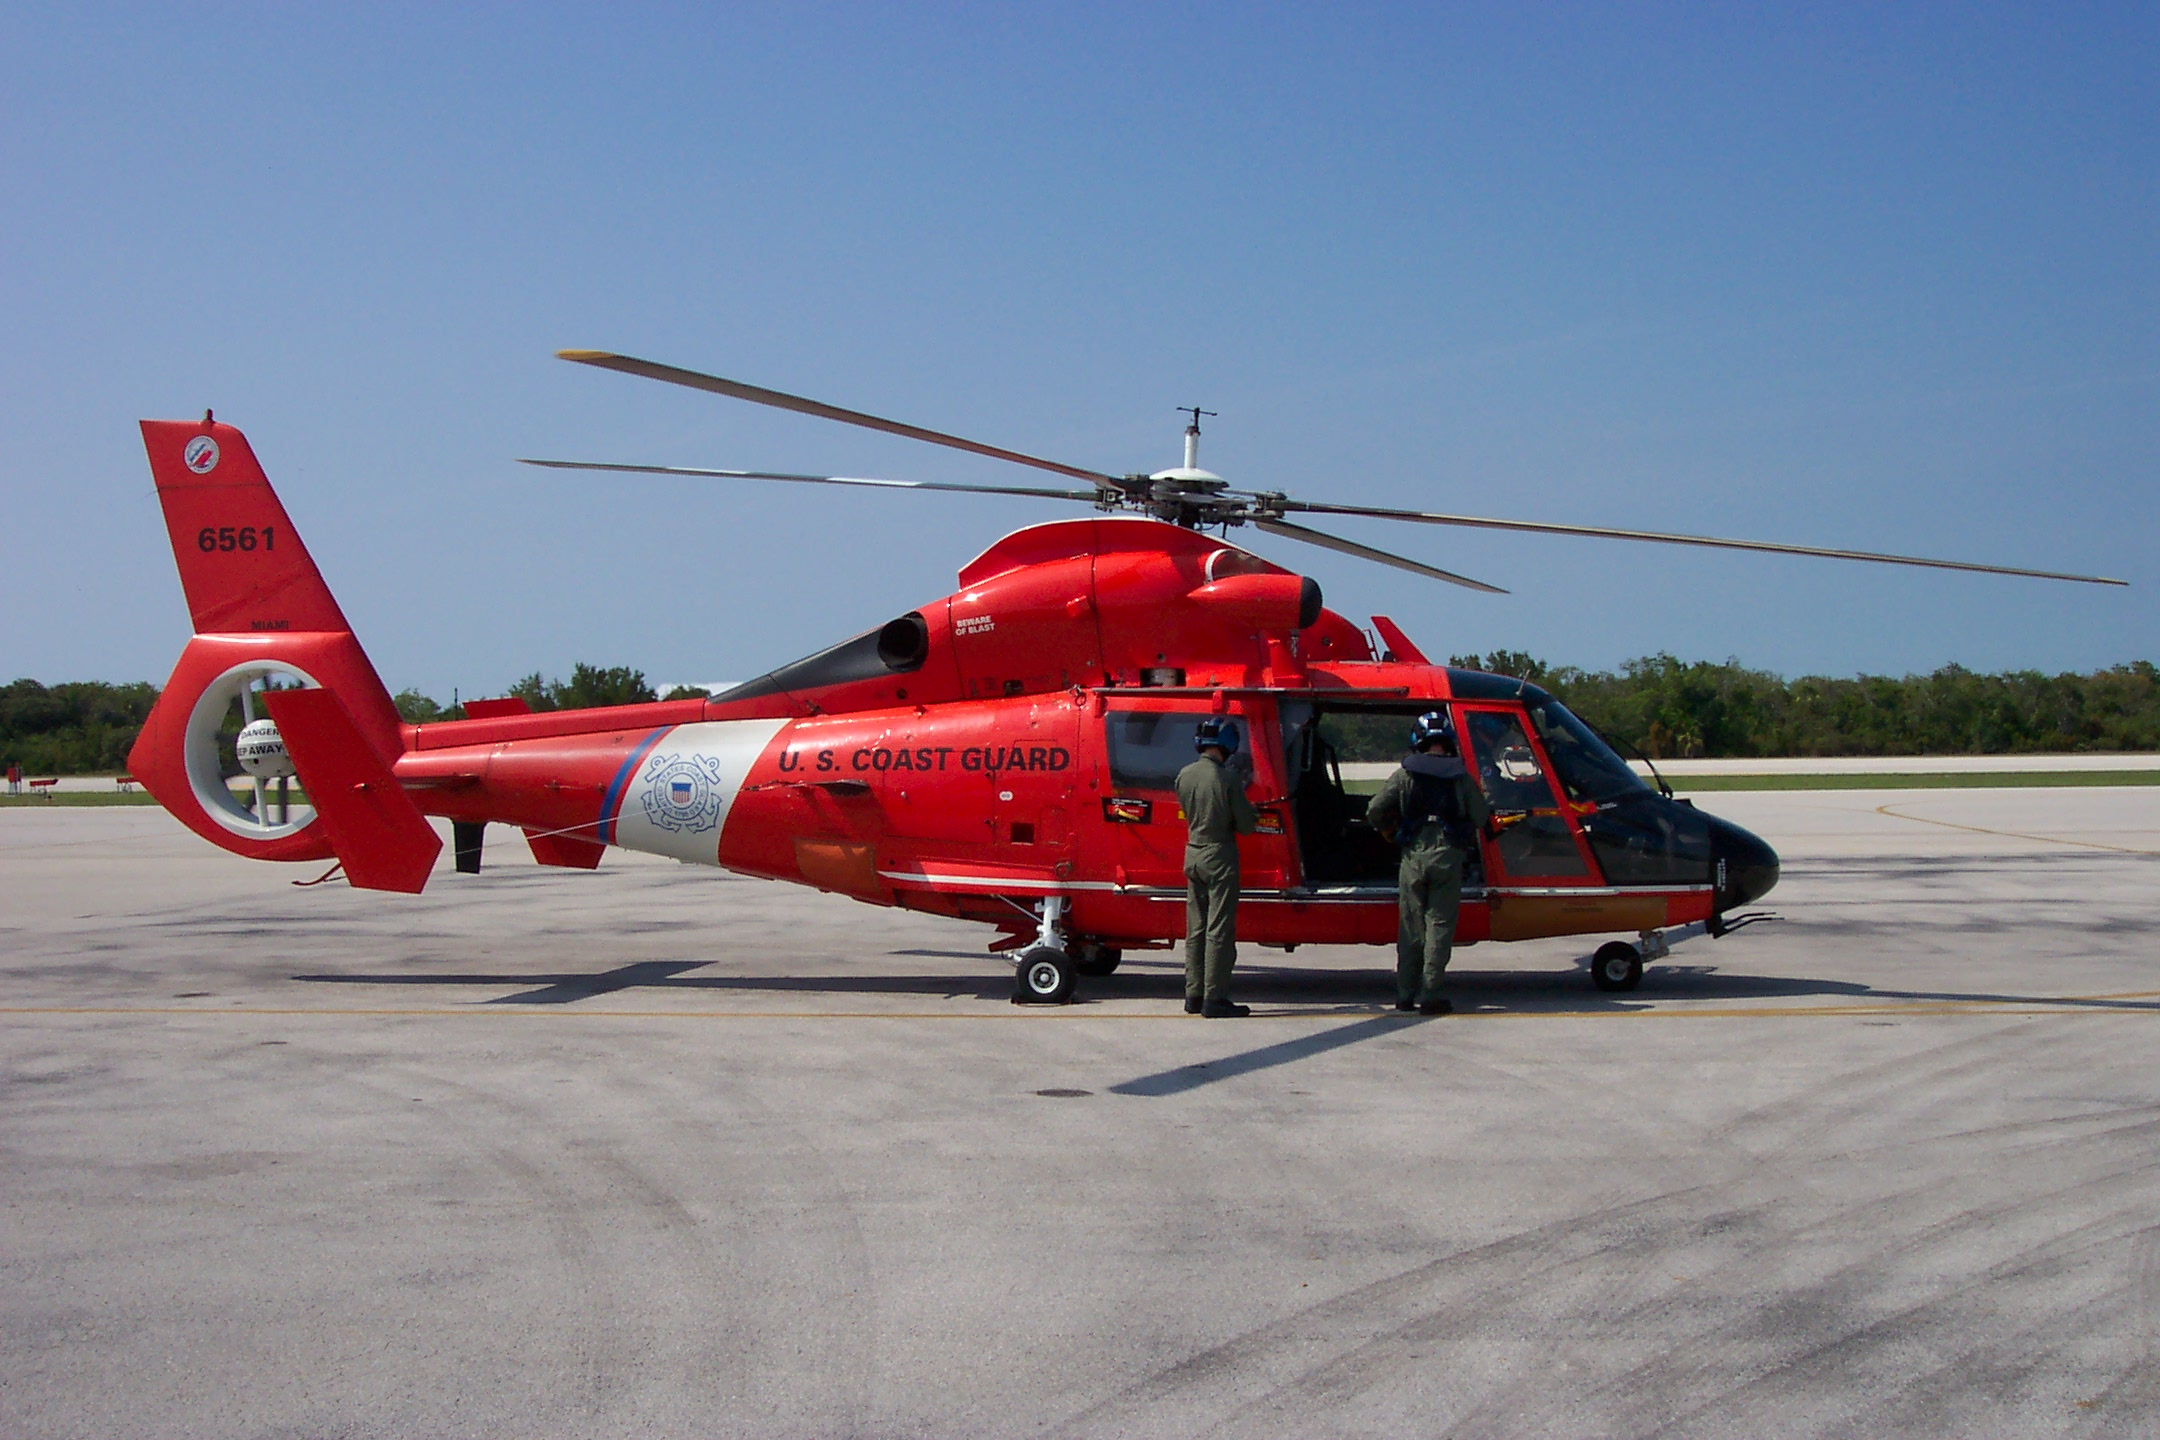 US_Coast_Guard_HH-65_Dolphin_Helicopter.JPG